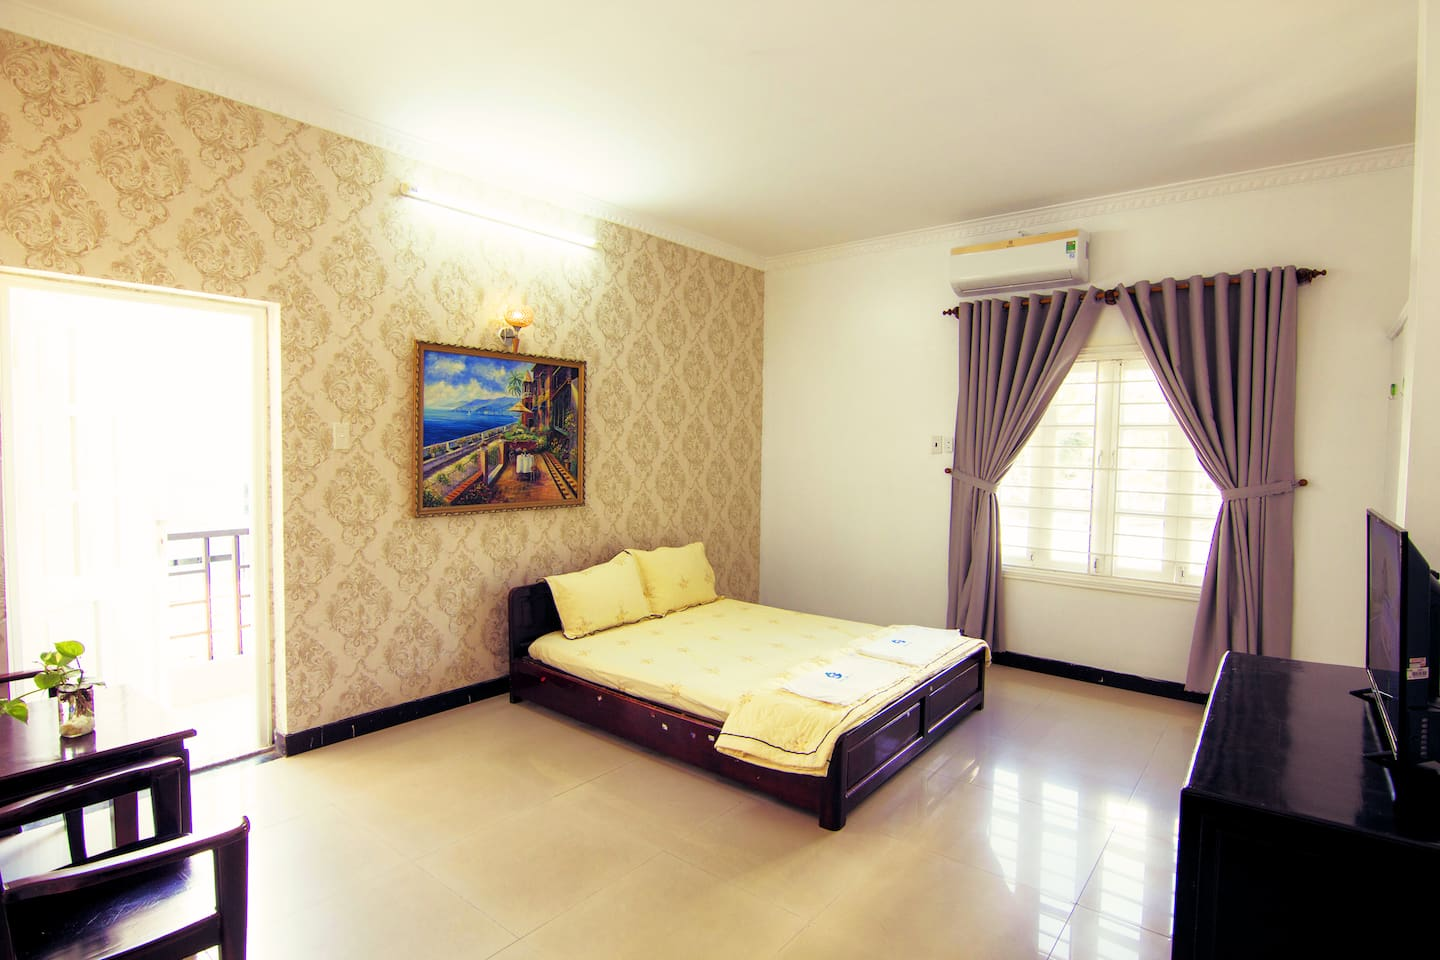 Bedroom 203 with a comfortable double bed for great night's sleep